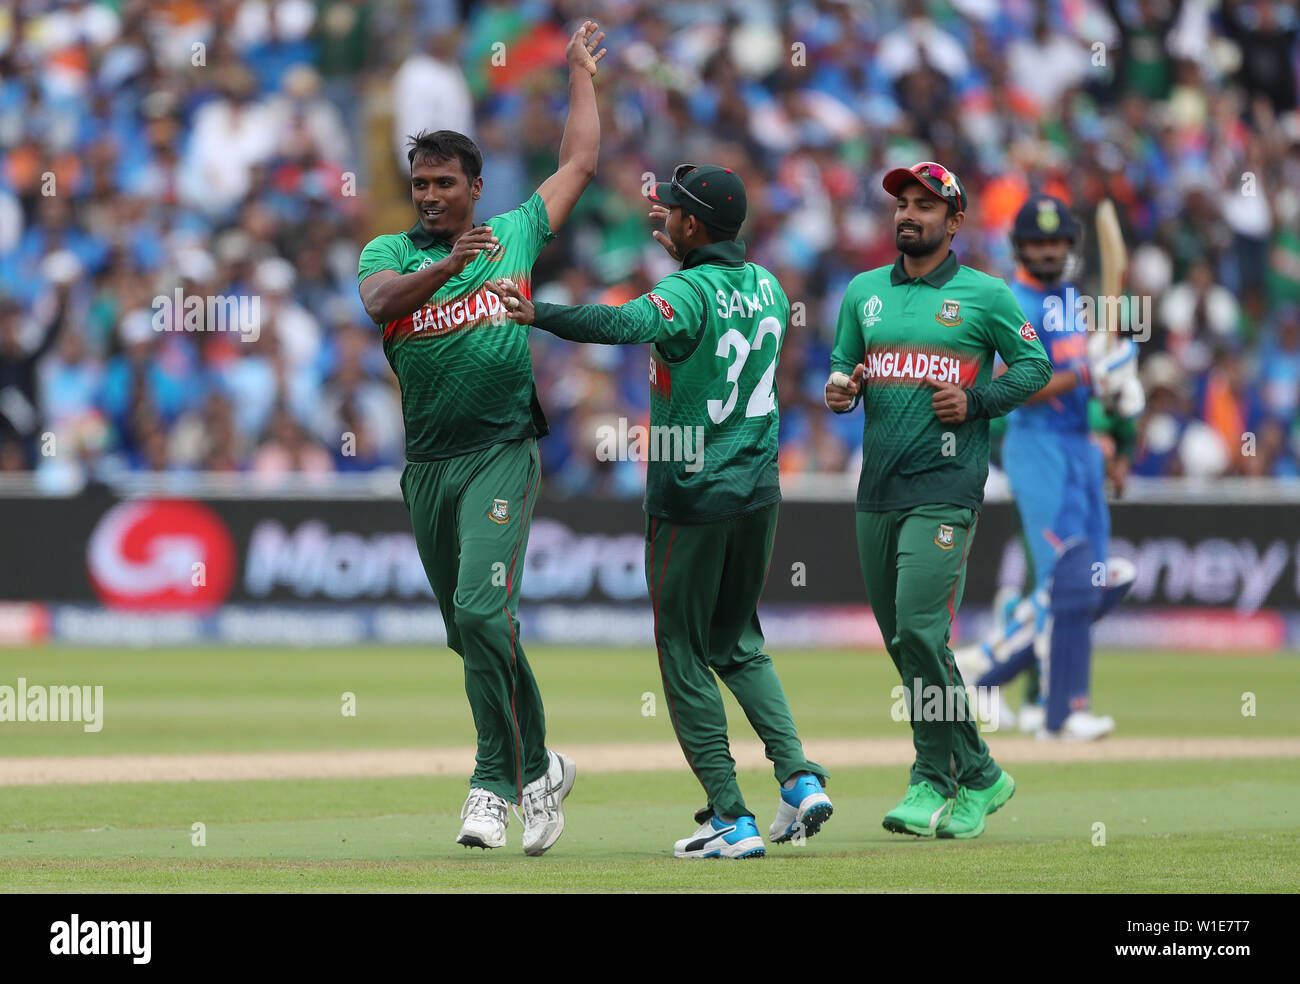 Bangladesh's Rubel Hossain celebrates the wicket of India's KL Rahul during the ICC Cricket World Cup group stage match at Edgbaston, Birmingham. - Stock Image